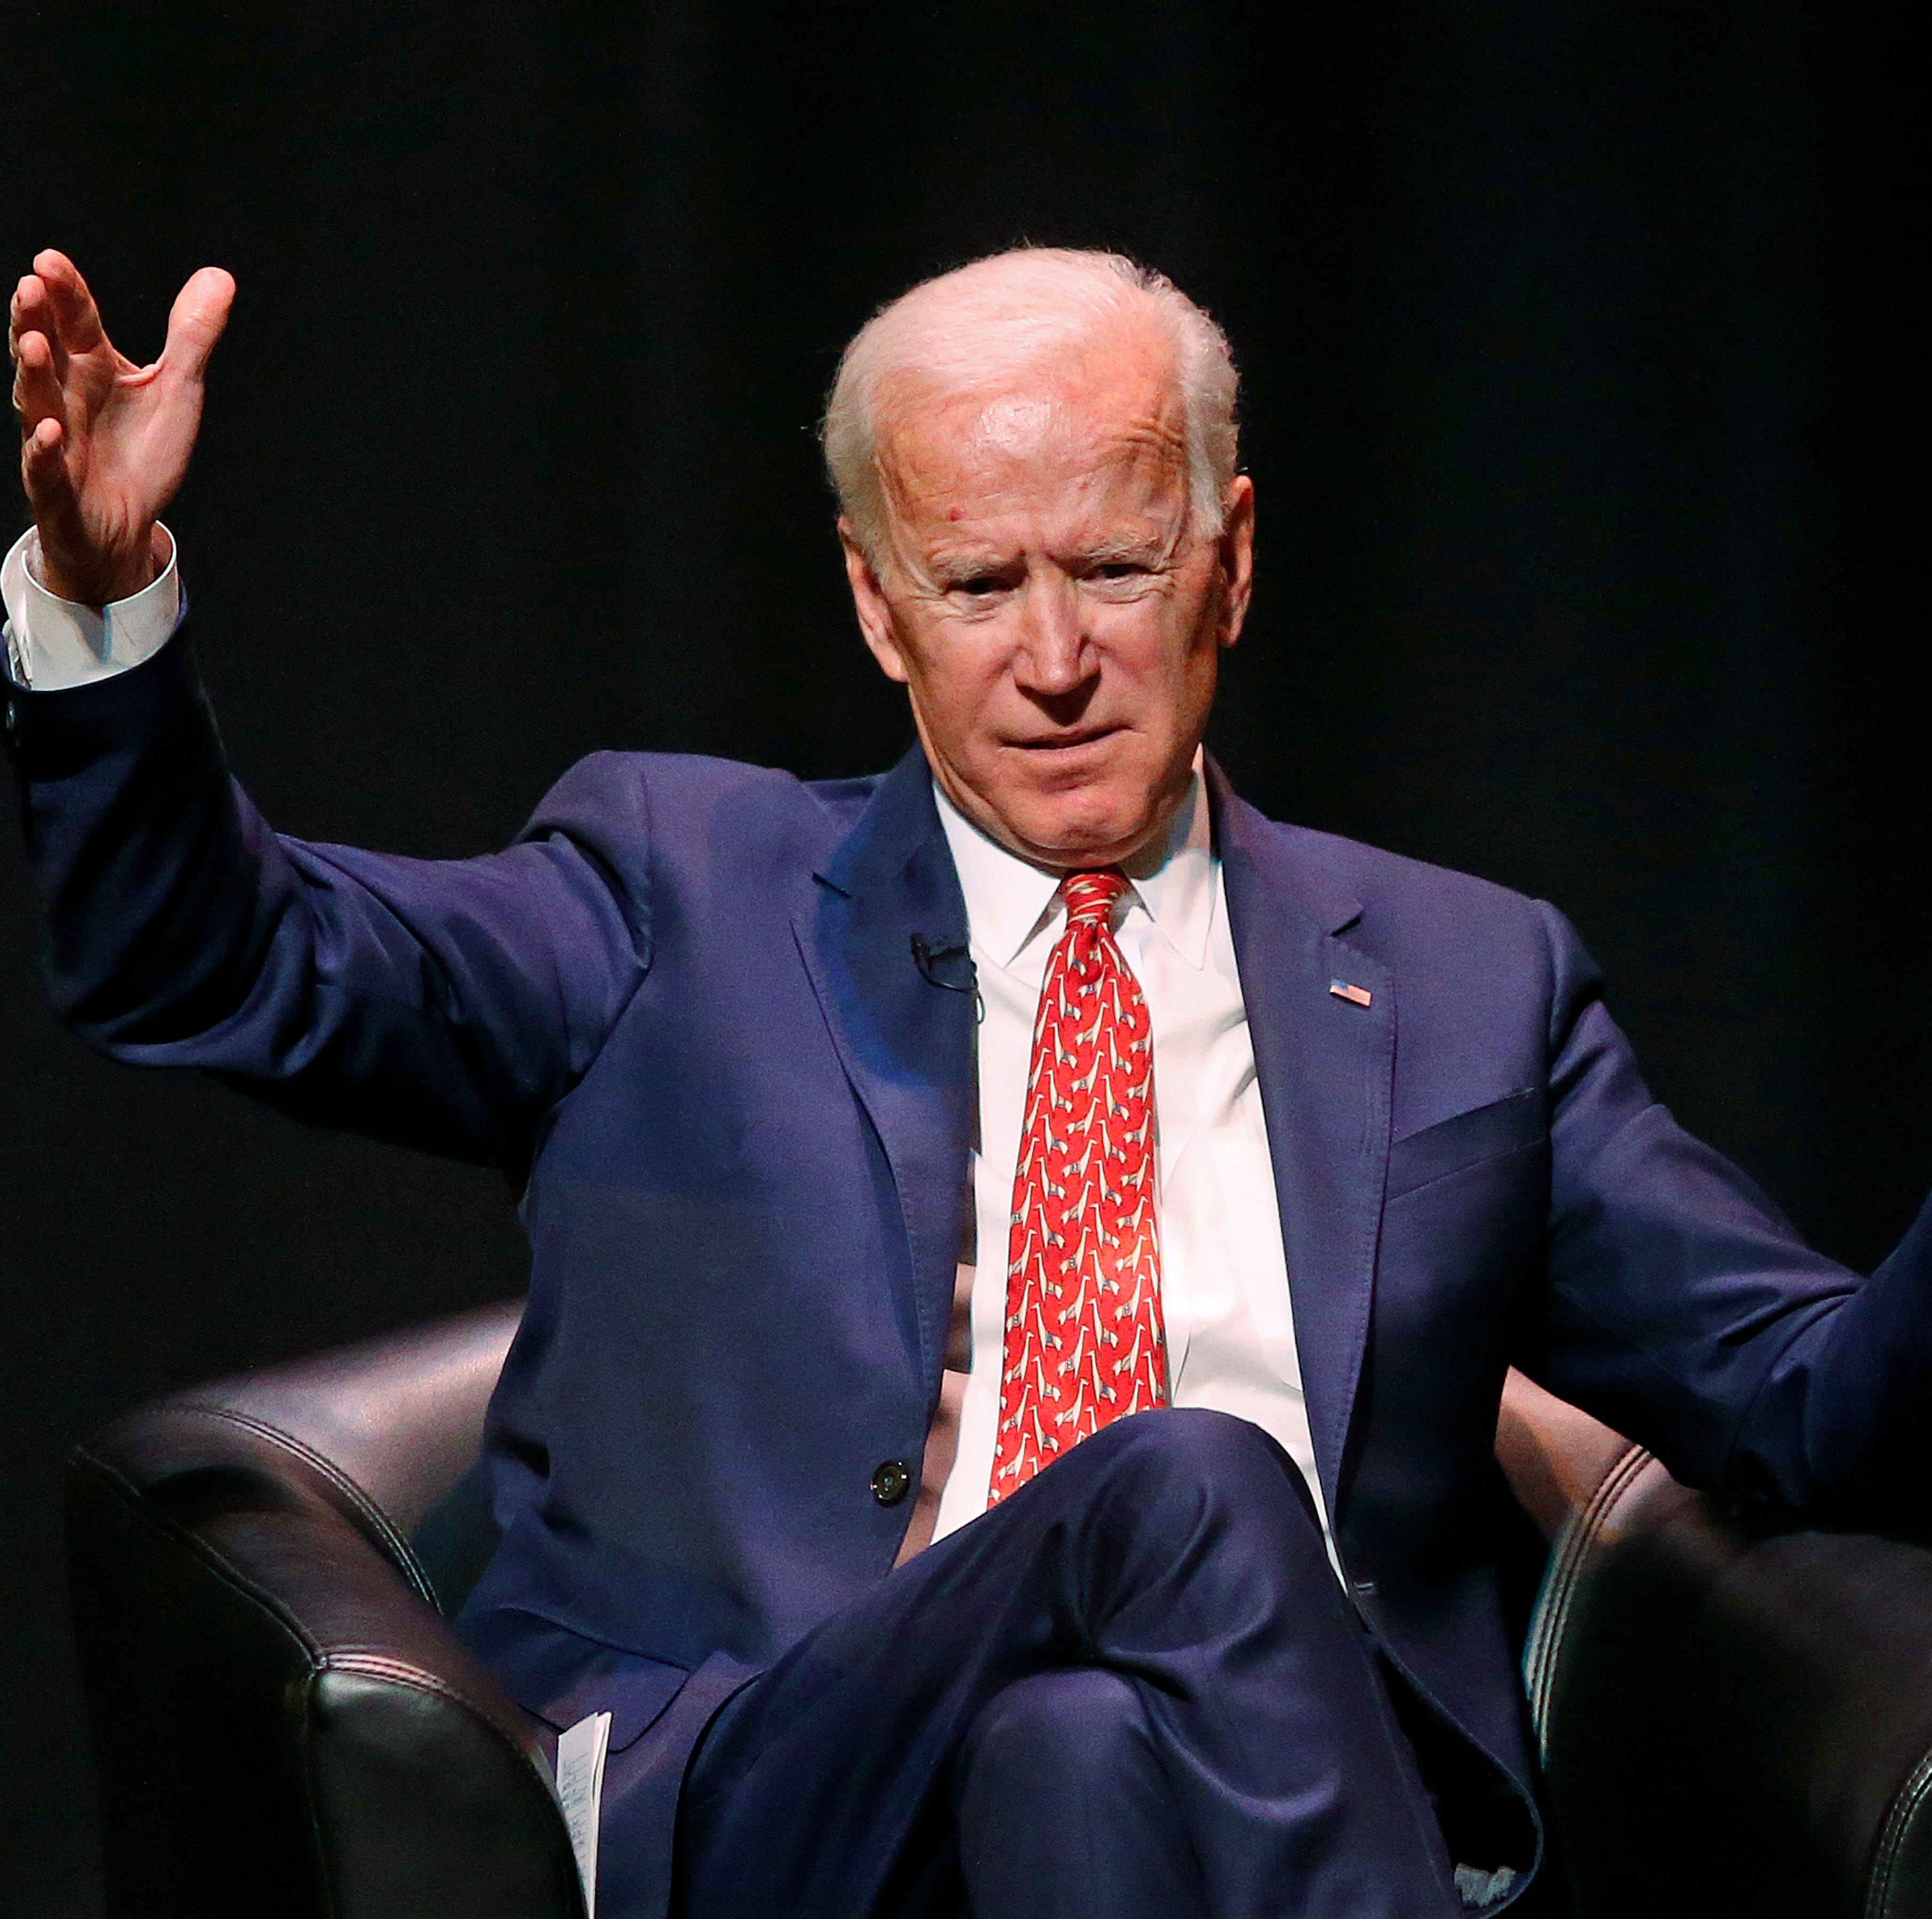 Joe Biden wrestles with age as he eyes 2020 run